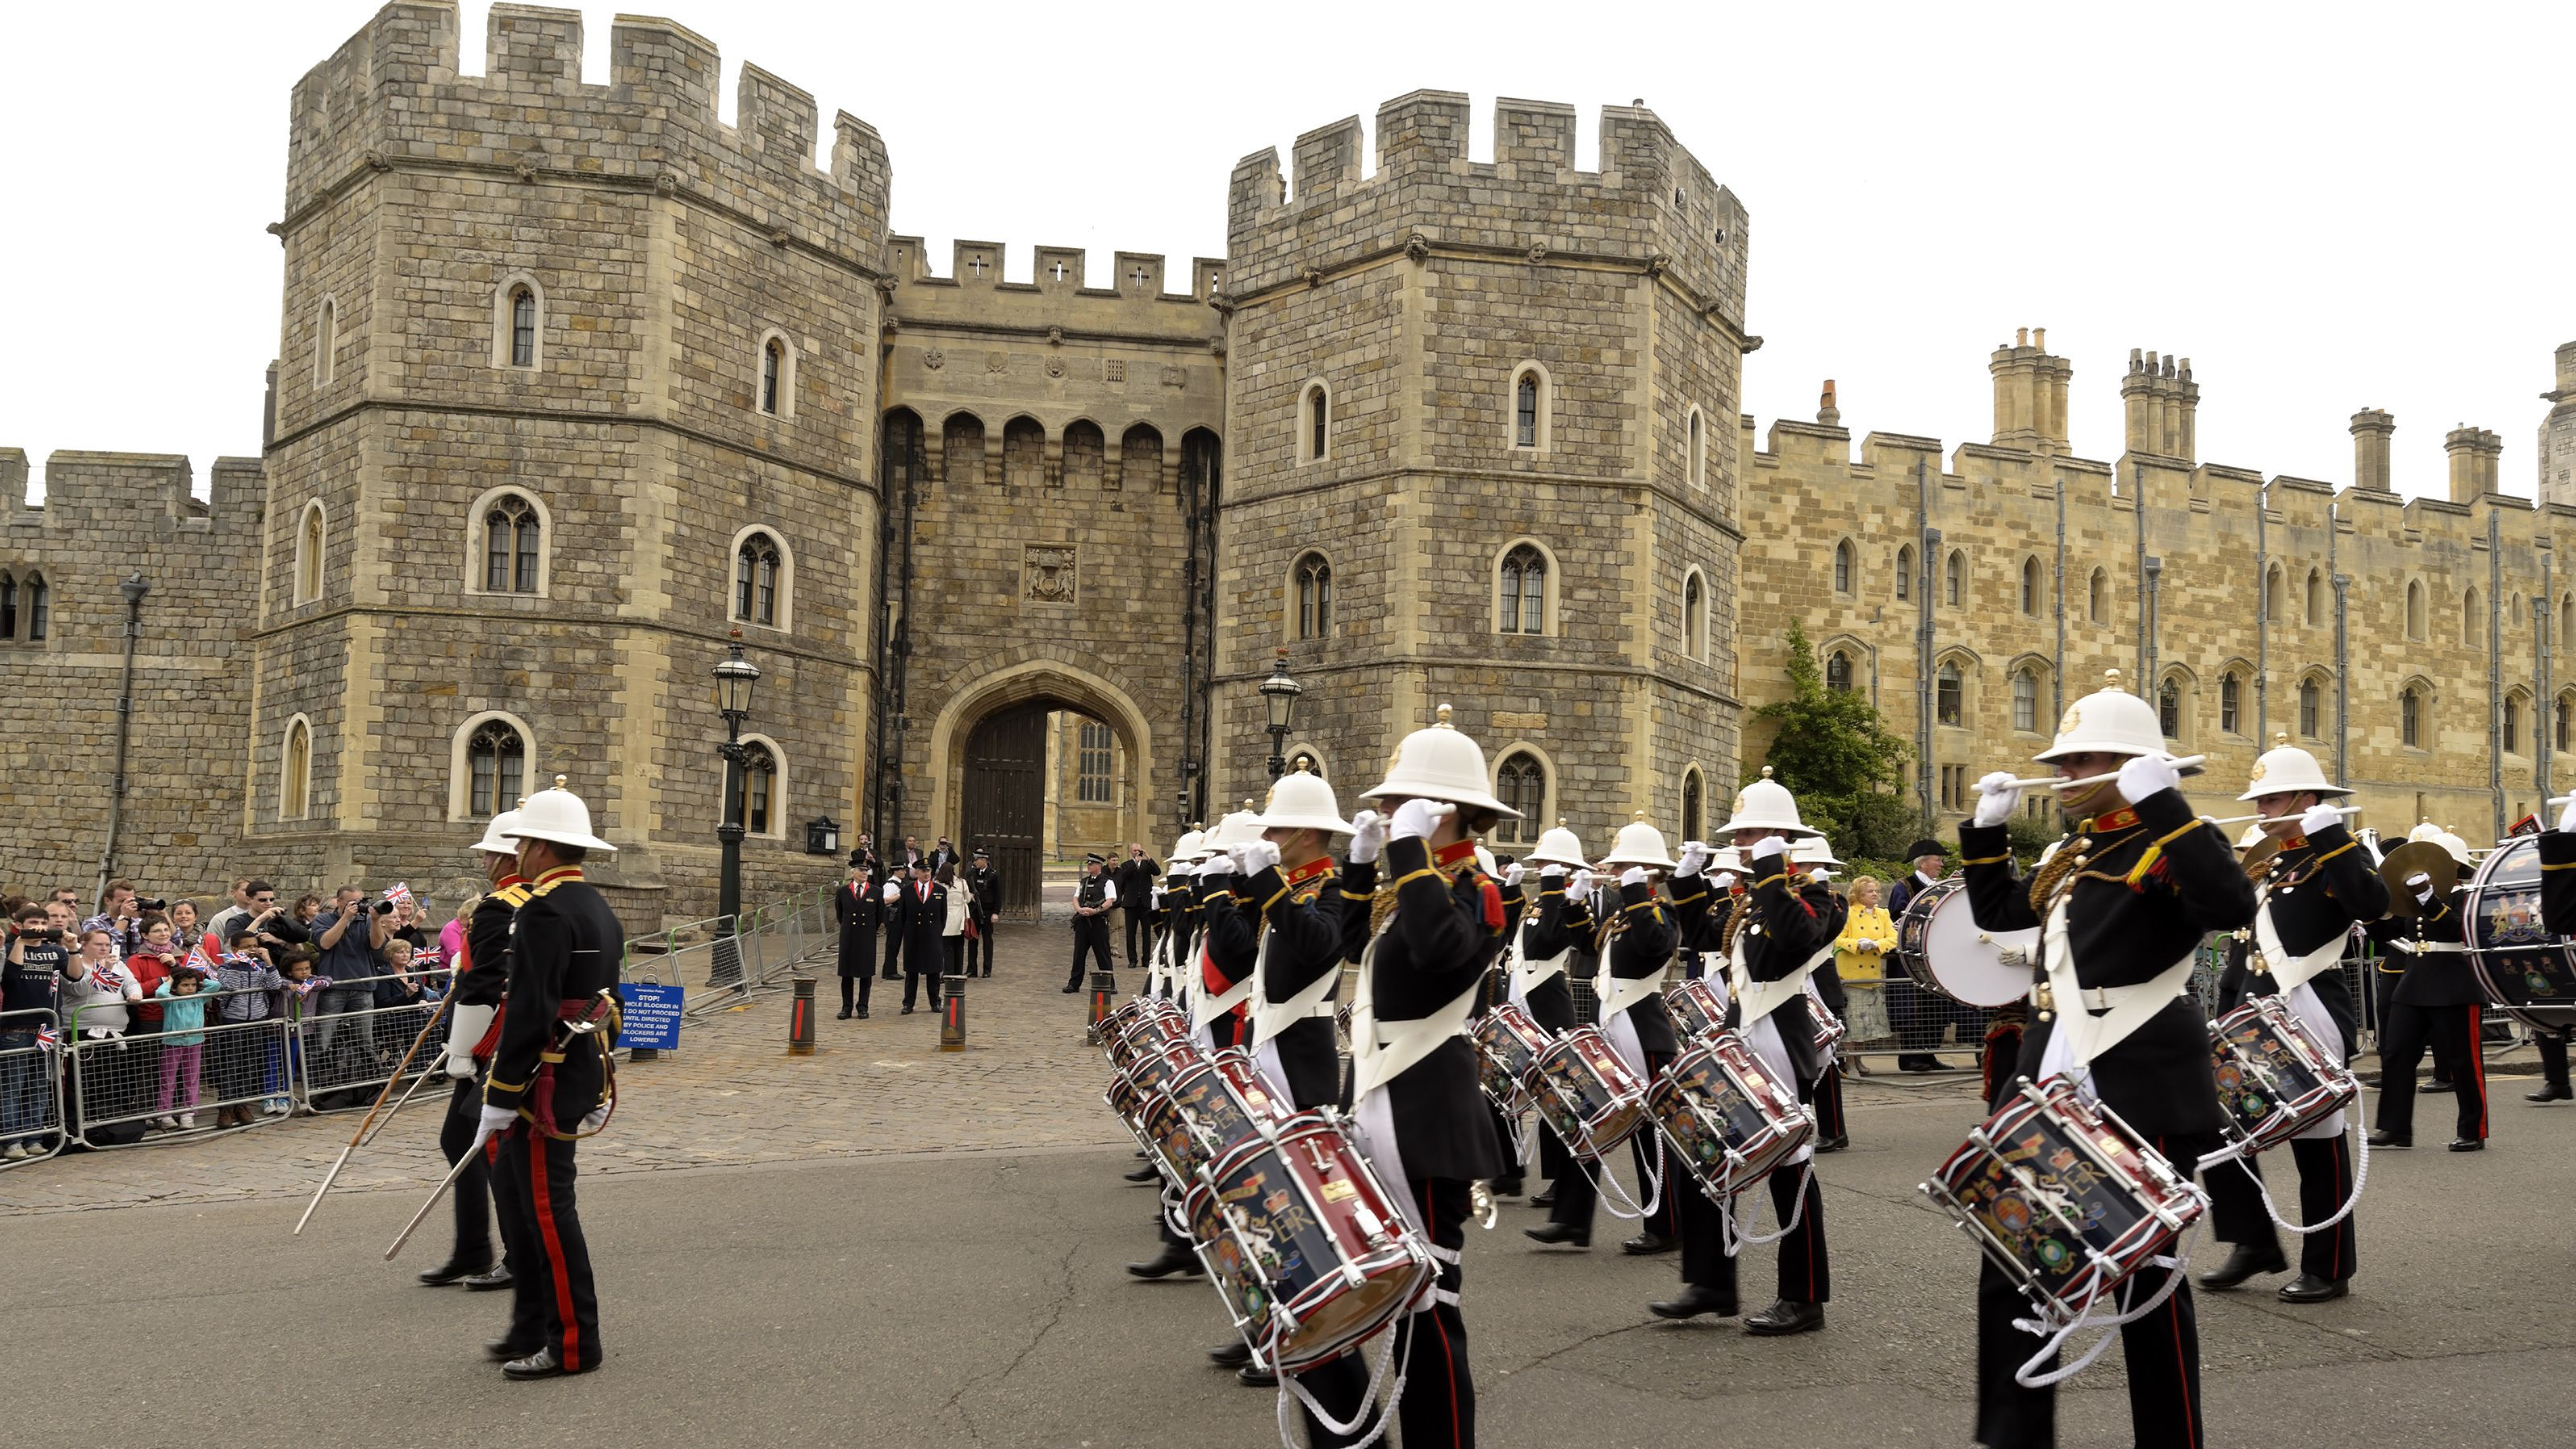 marching band playing drums at Windsor Castle in London